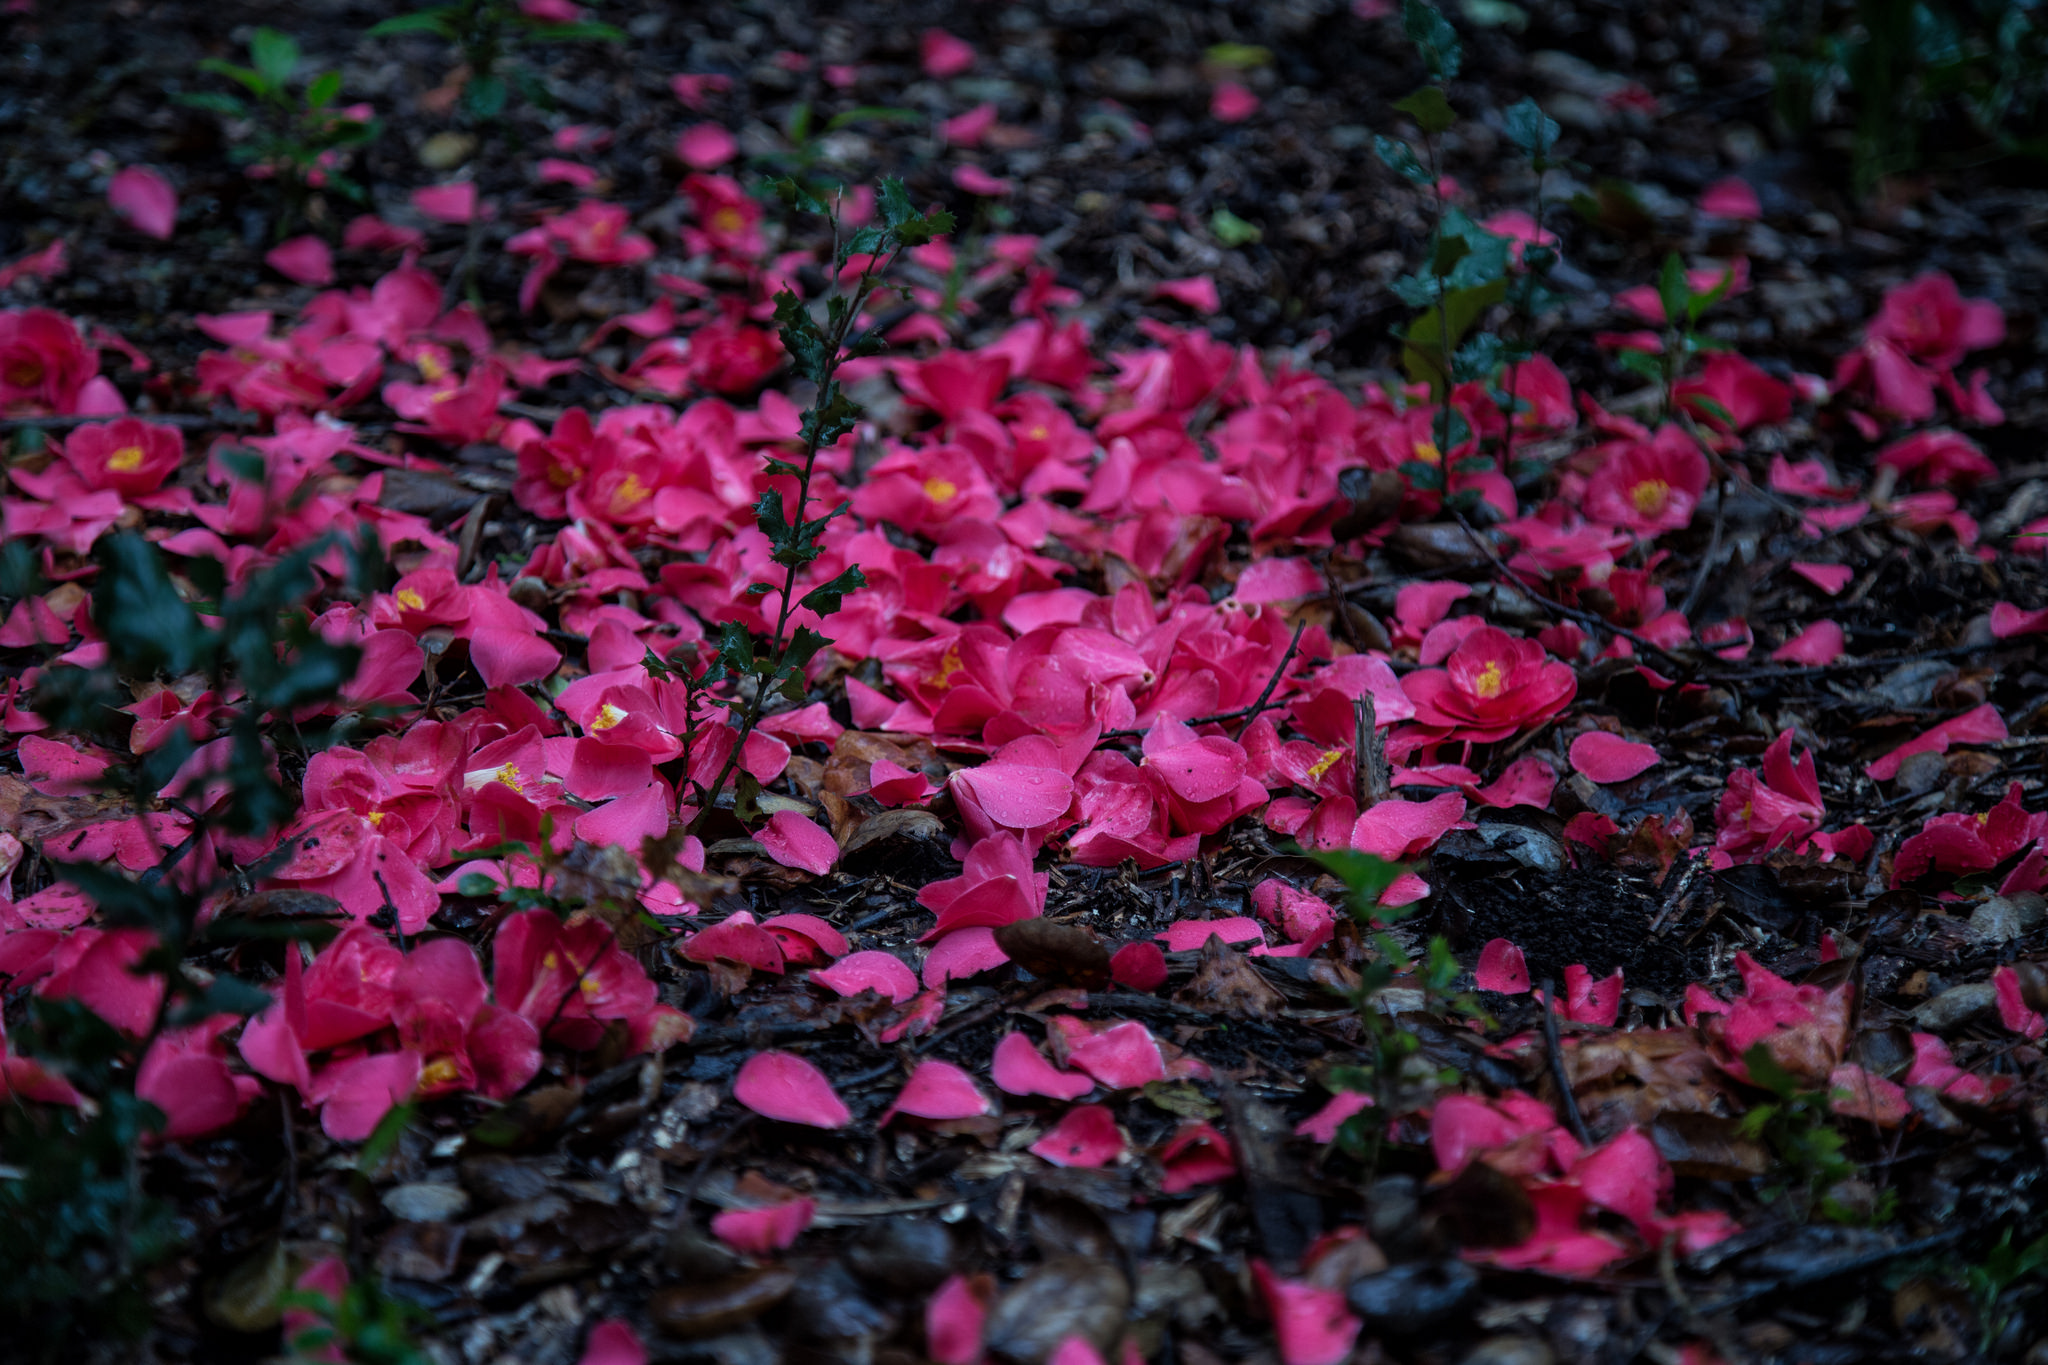 Fallen camellia flowers, like tiny valentines on the forest floor.